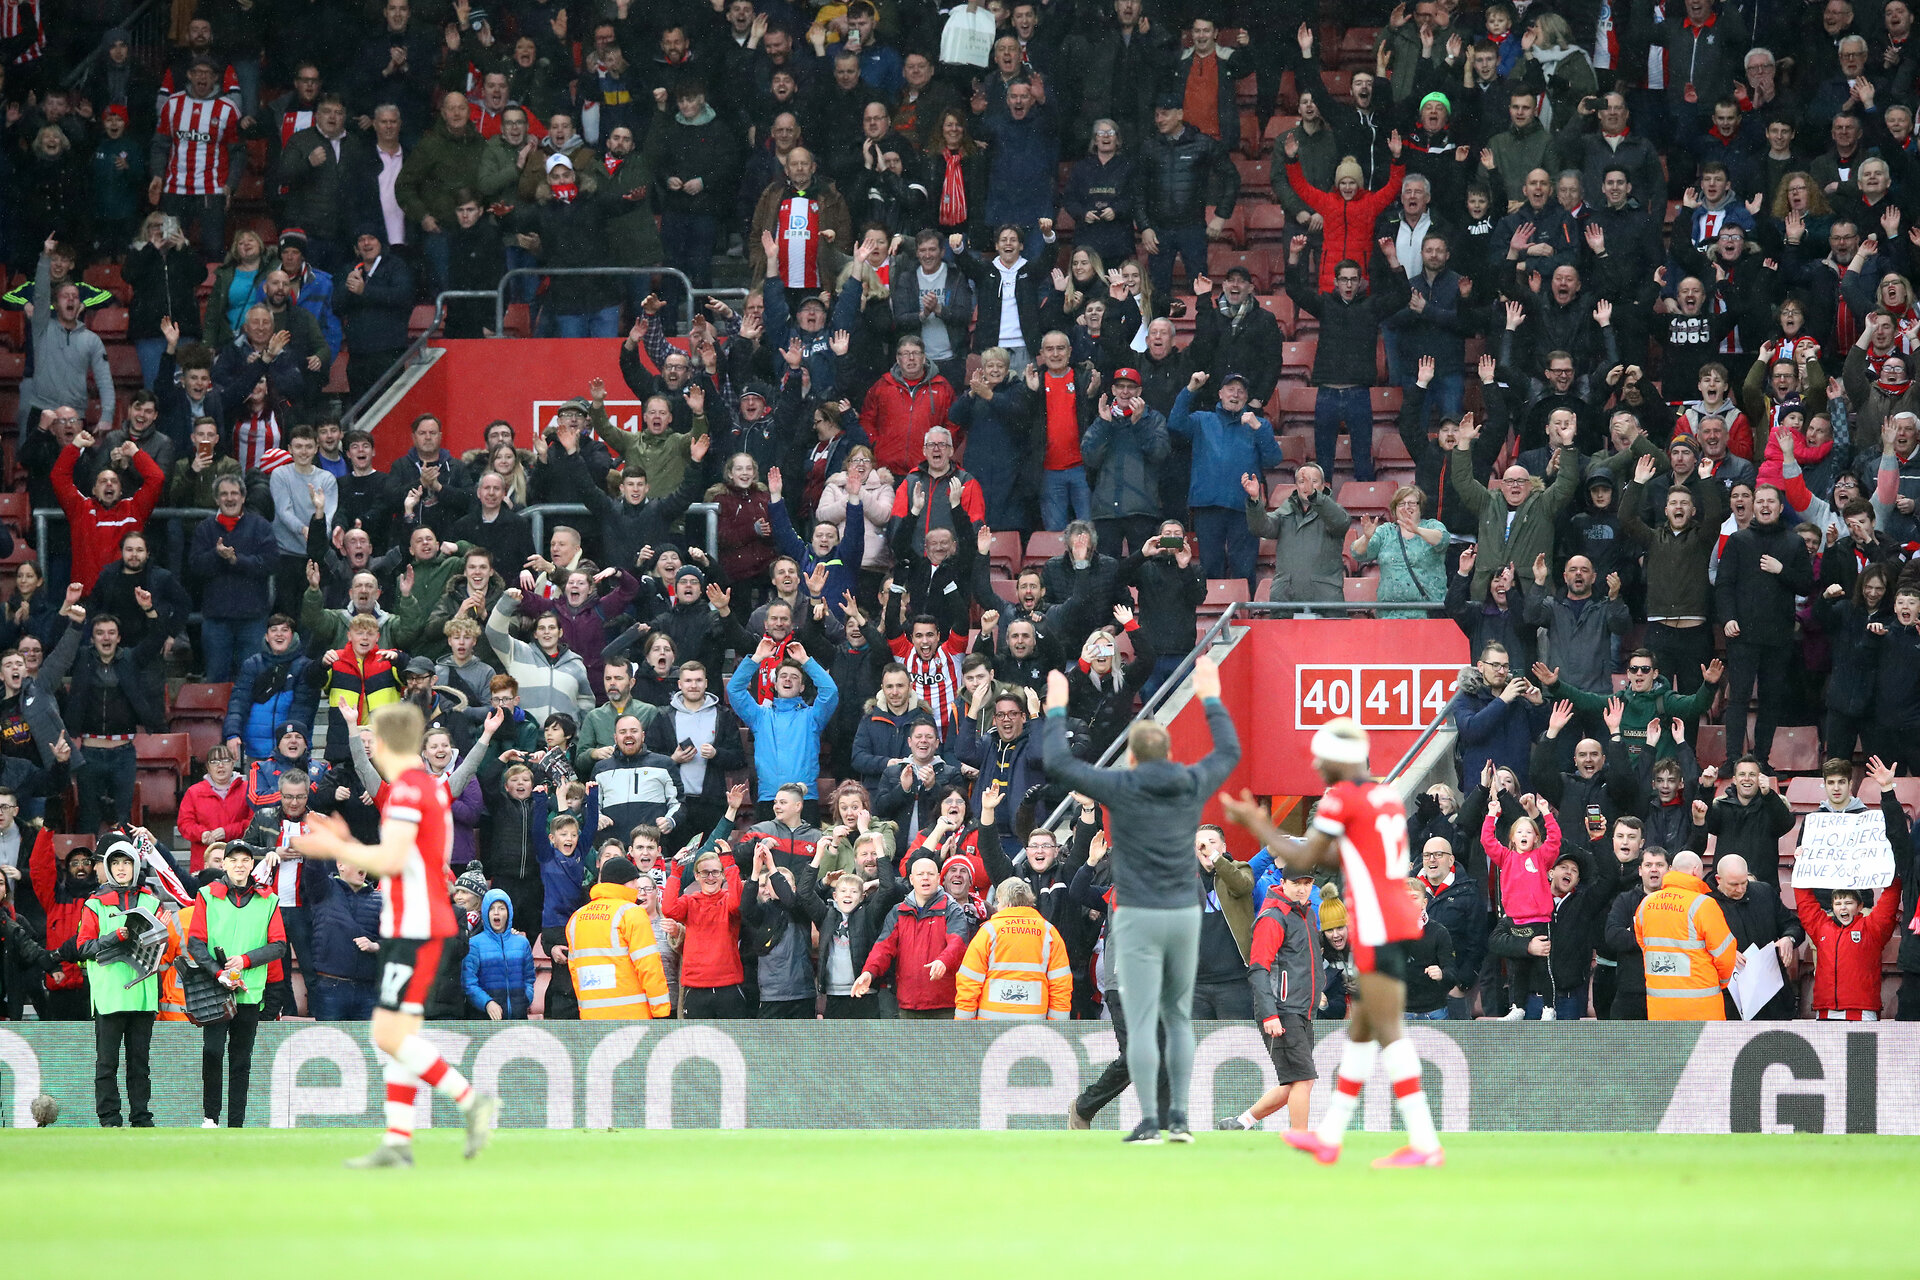 SOUTHAMPTON, ENGLAND - FEBRUARY 22: Southampton fans celebrate with Ralph Hasenhuttl during the Premier League match between Southampton FC and Aston Villa at St Mary's Stadium on February 22, 2020 in Southampton, United Kingdom. (Photo by Matt Watson/Southampton FC via Getty Images)